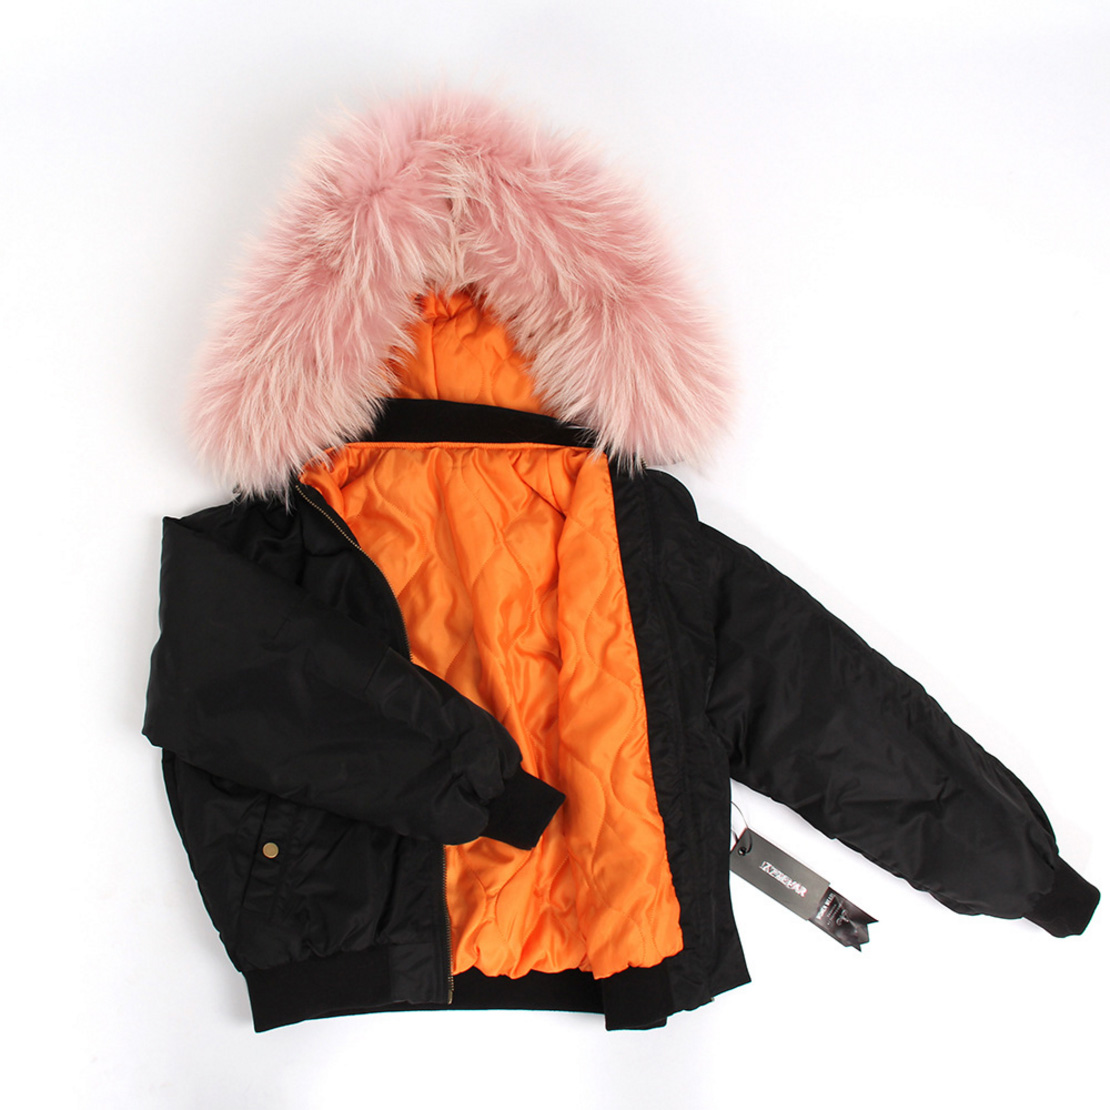 Raccoon Fur Trimmed Hooded Cotton-padded Jacket 129 Details 9